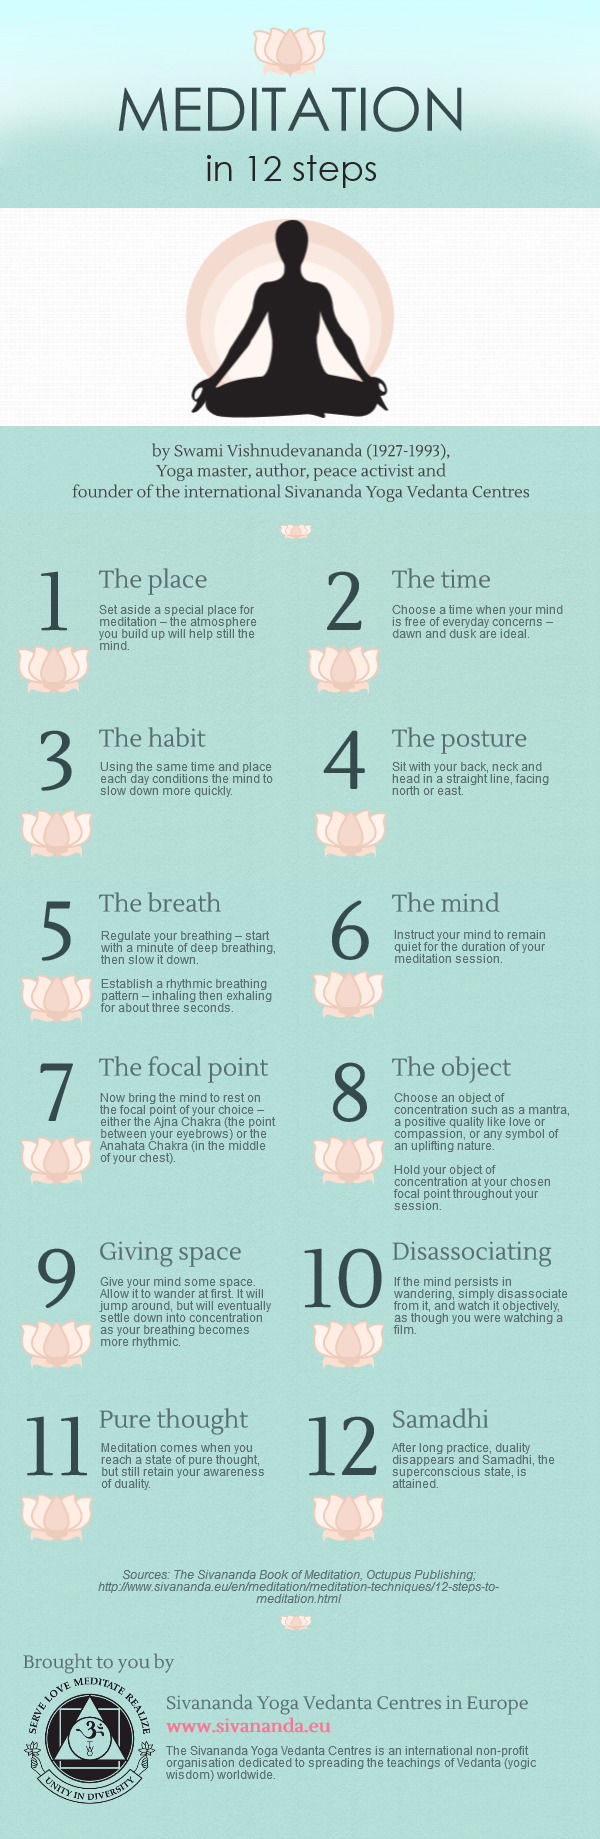 Meditation In 12 Steps Pictures, Photos, and Images for ...